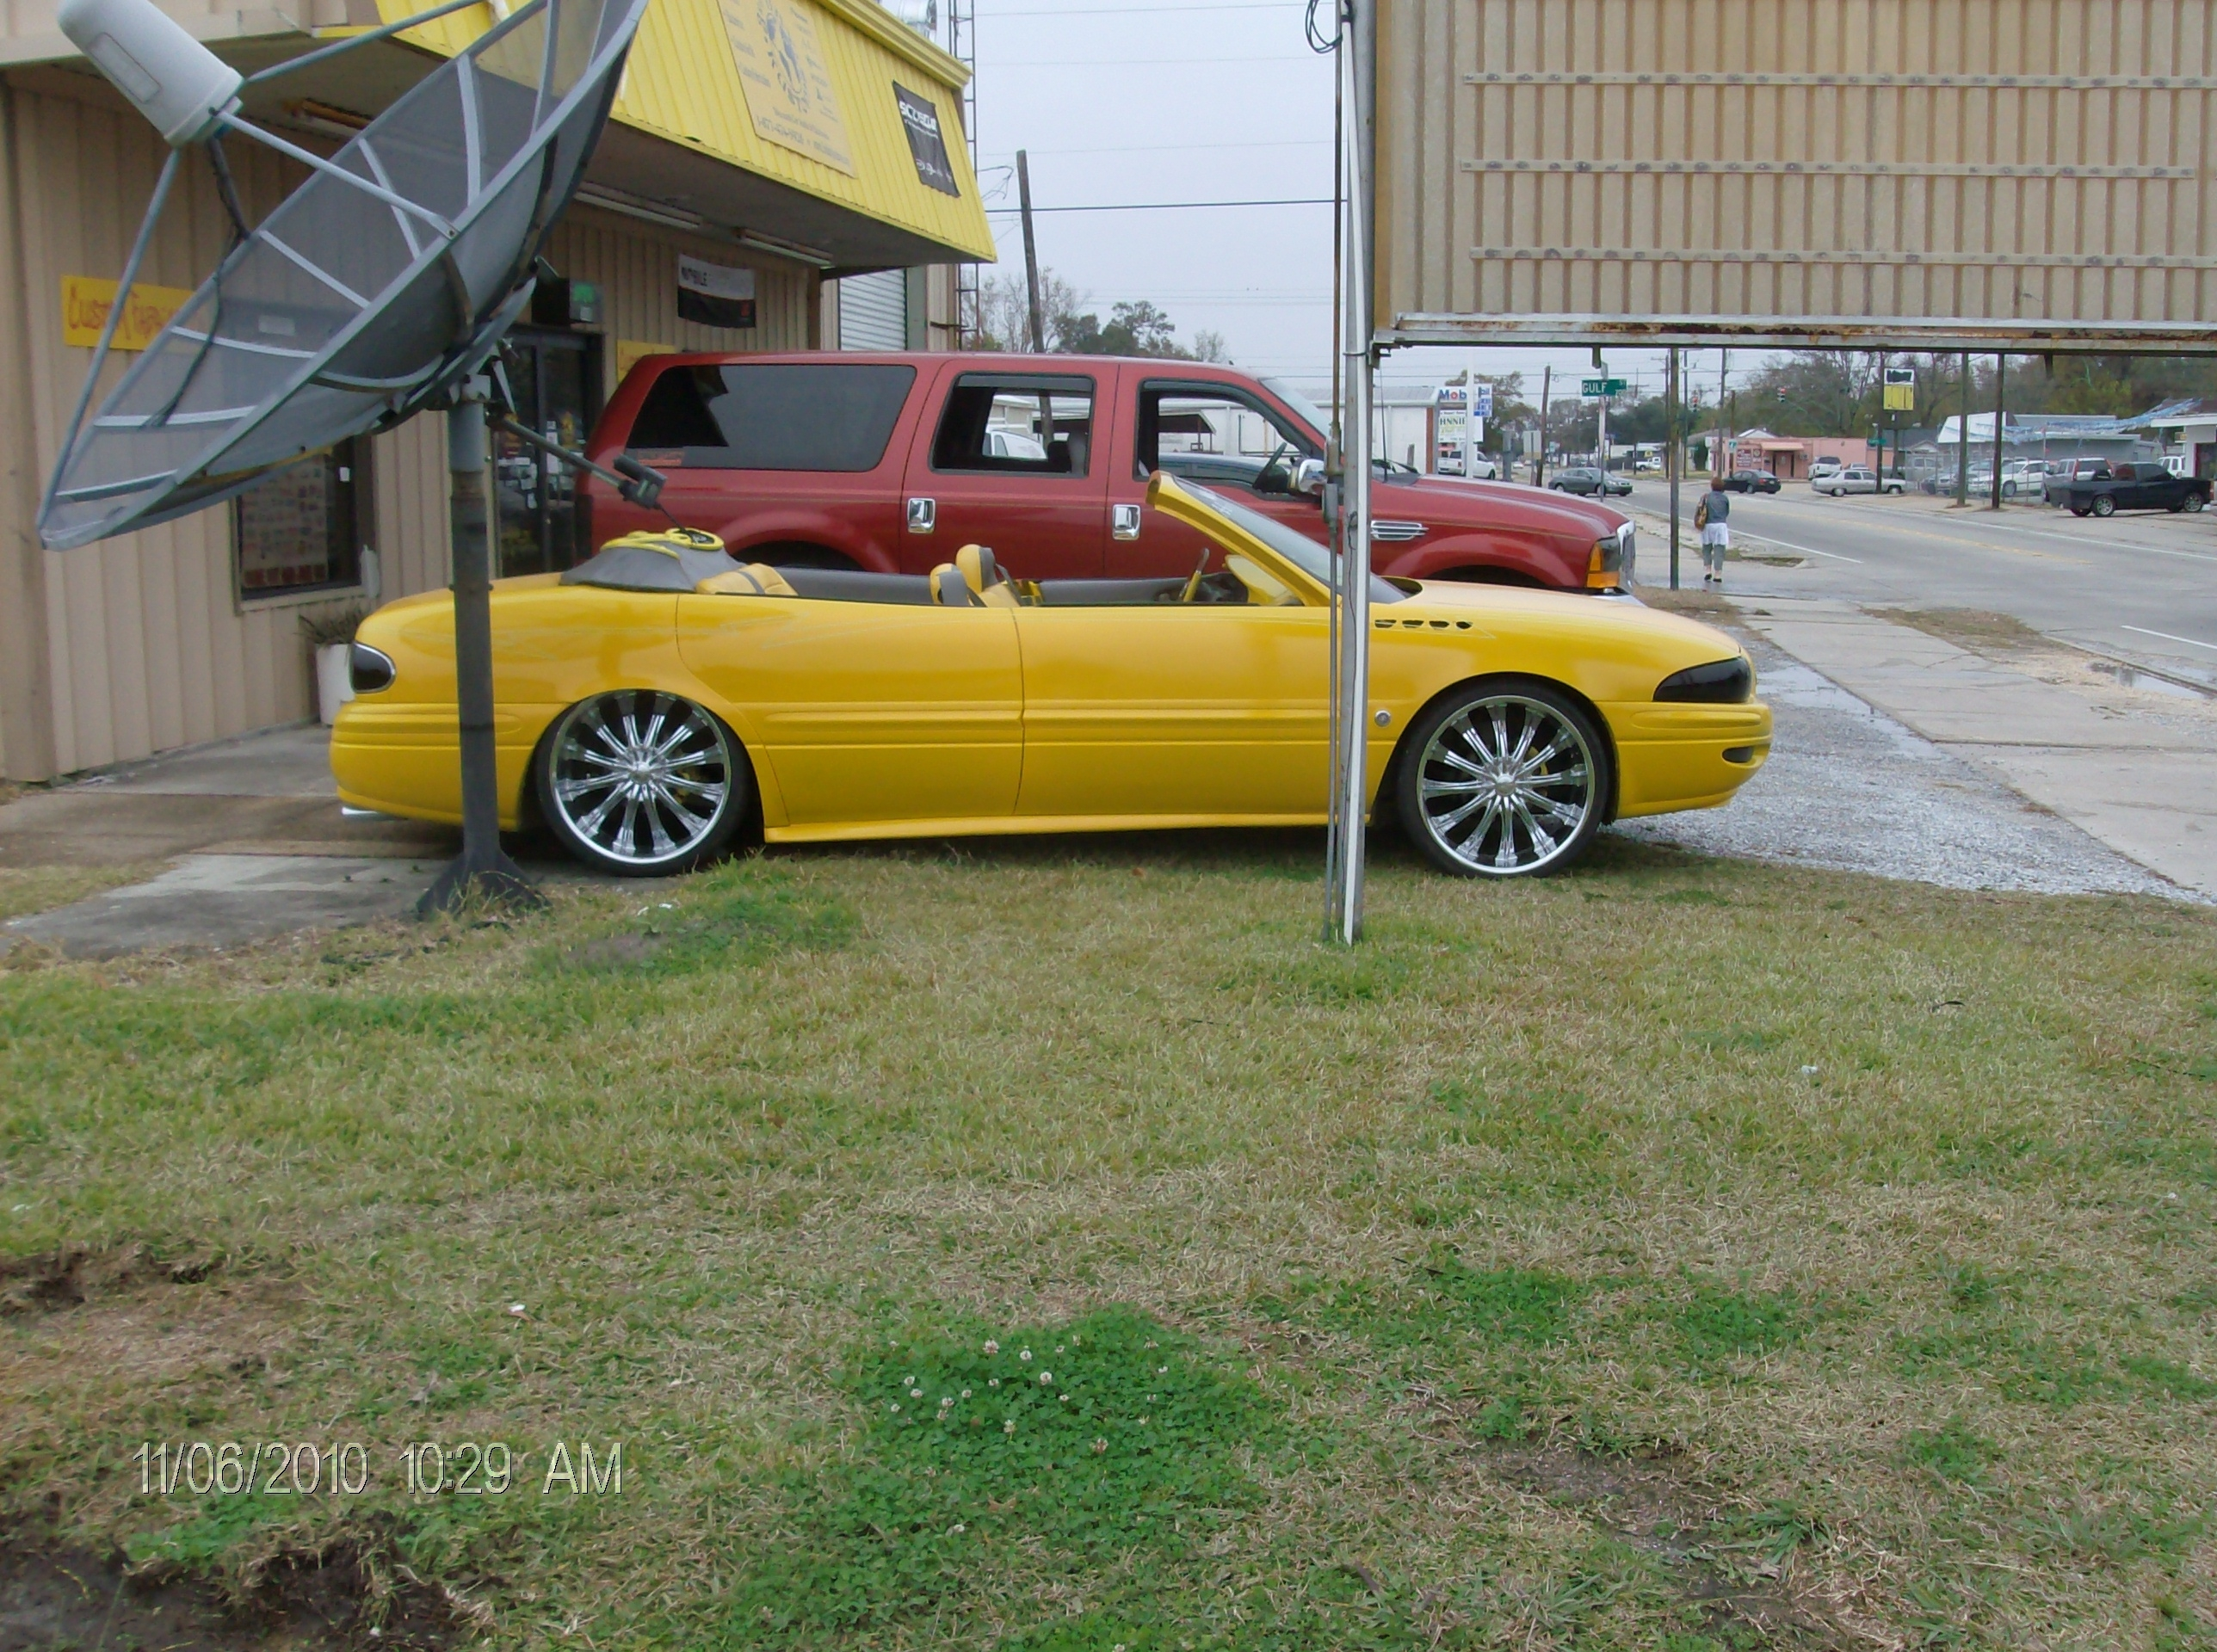 Buick Lesabre Rims B also Original as well Wc also Pic X besides Buick Century Rims Wallpaper. on 2001 buick lesabre rims